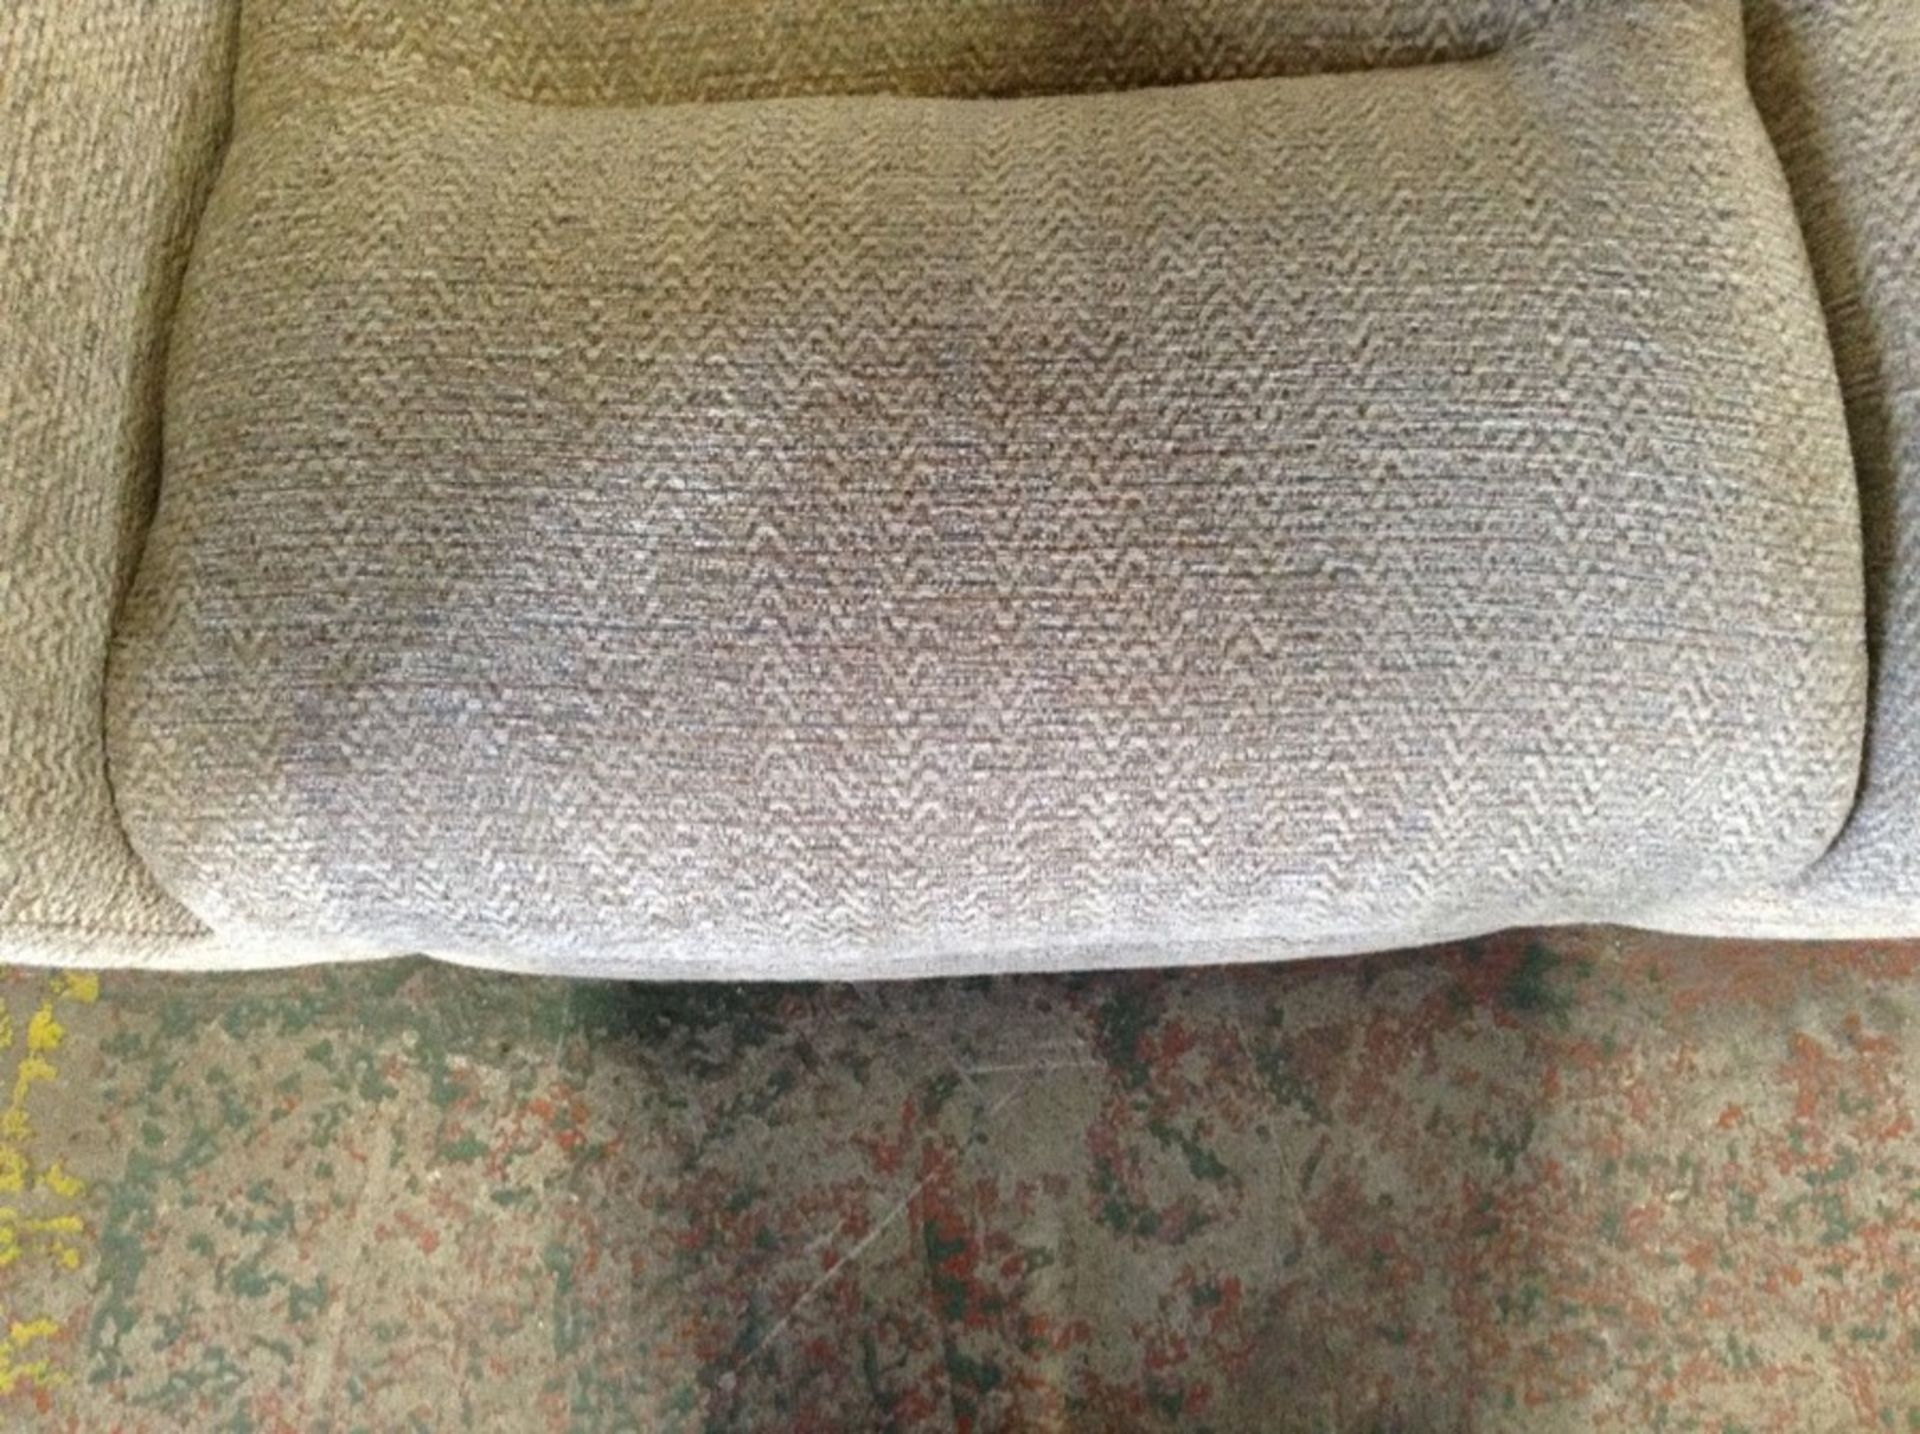 BISCUIT PATTERNED HIGH 3 SEATER ( WORN, DAMAGED) T - Image 2 of 2